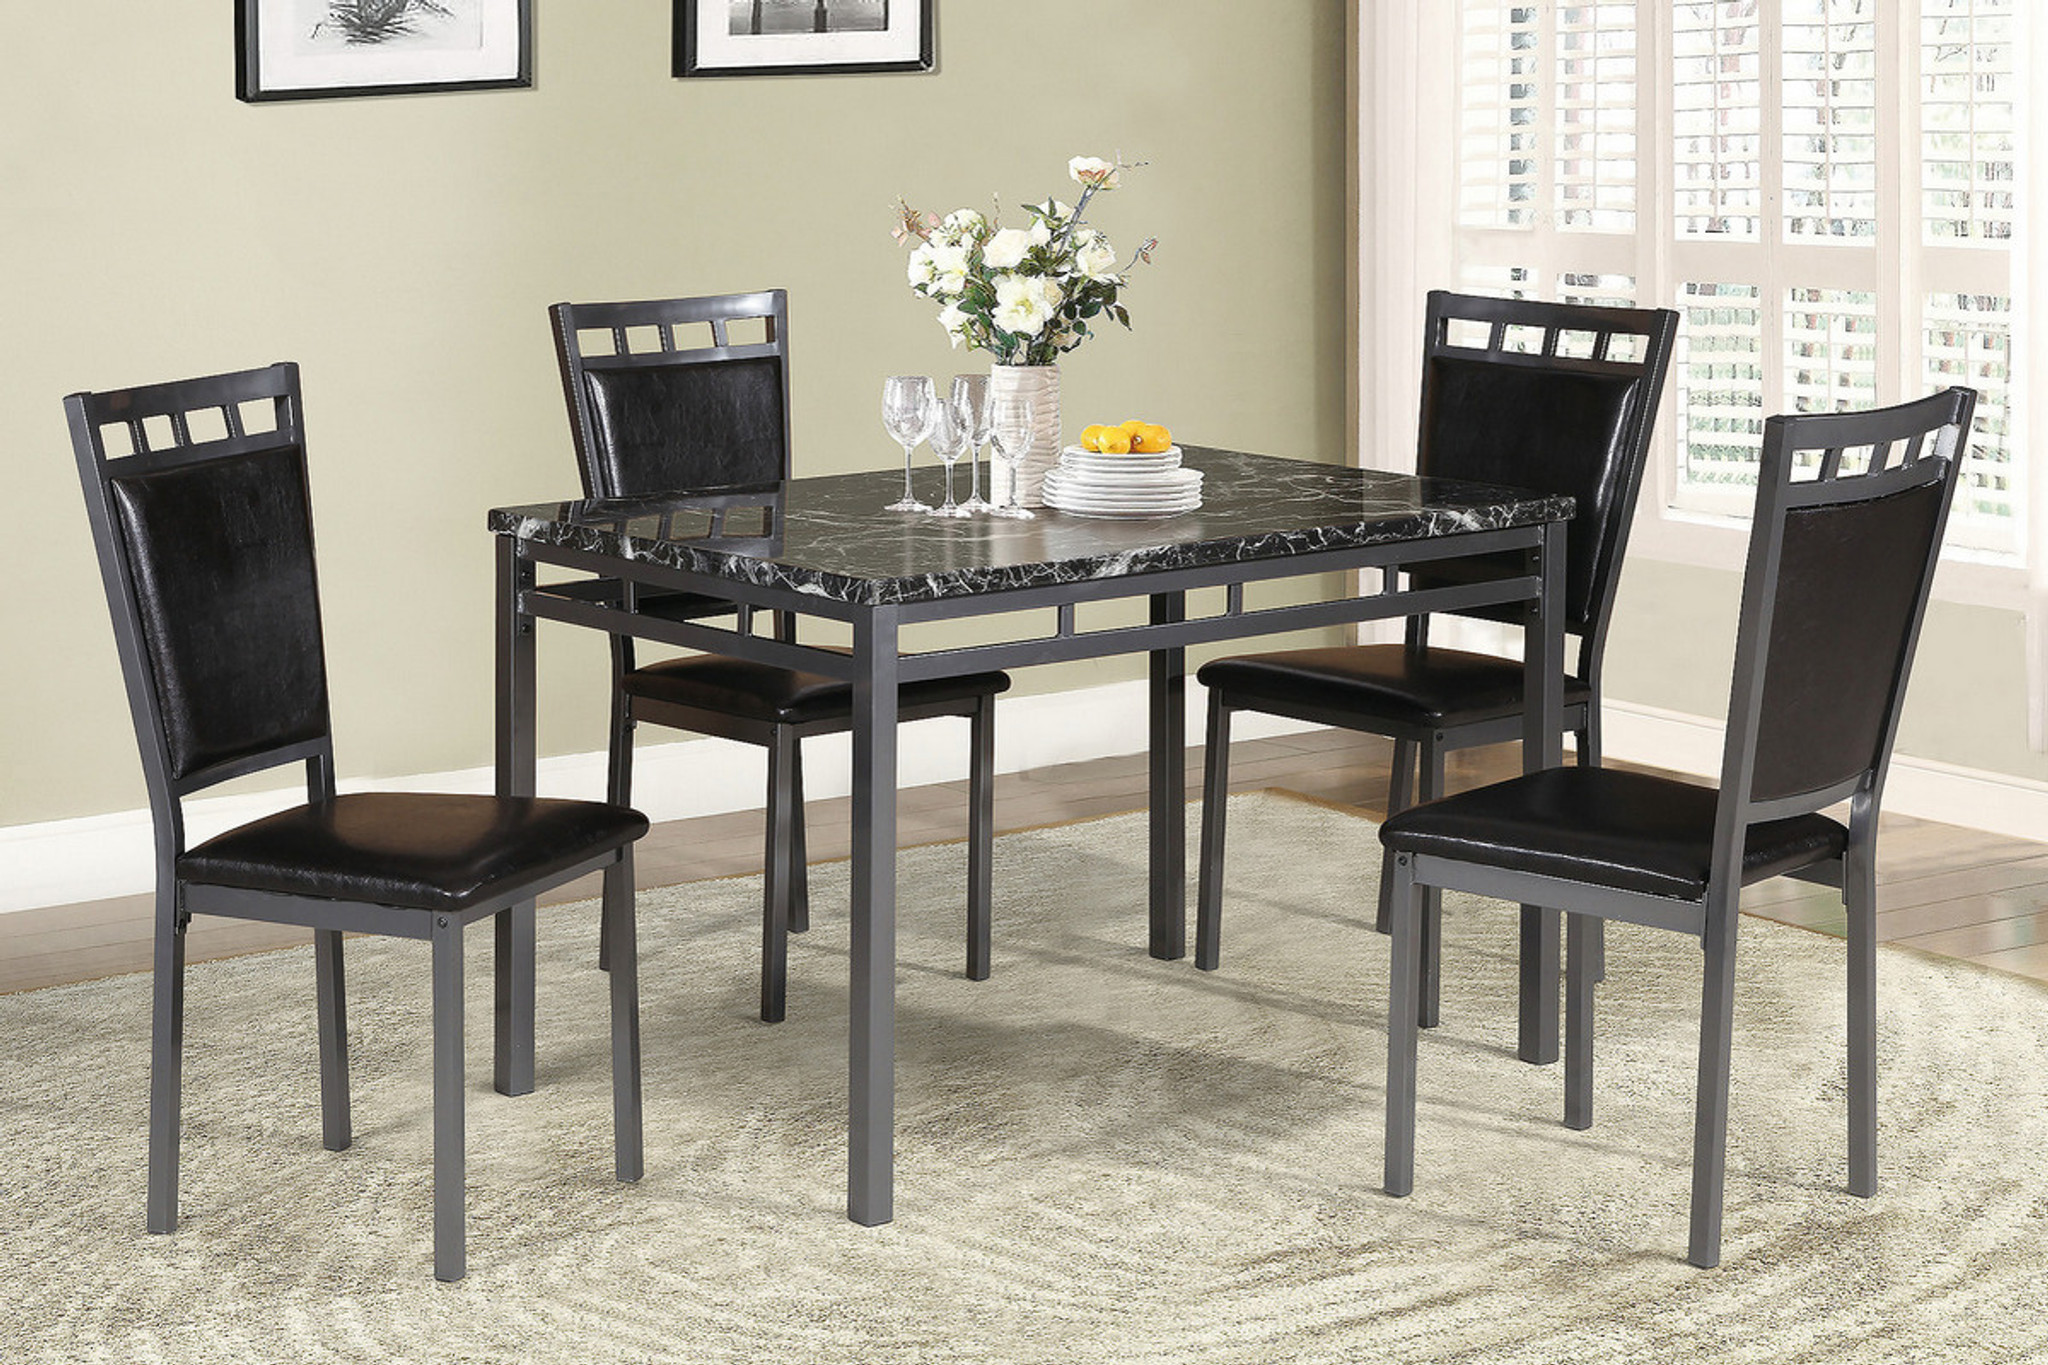 F2389-5PCS DINING TABLE SET ESPRESSO By Poundex